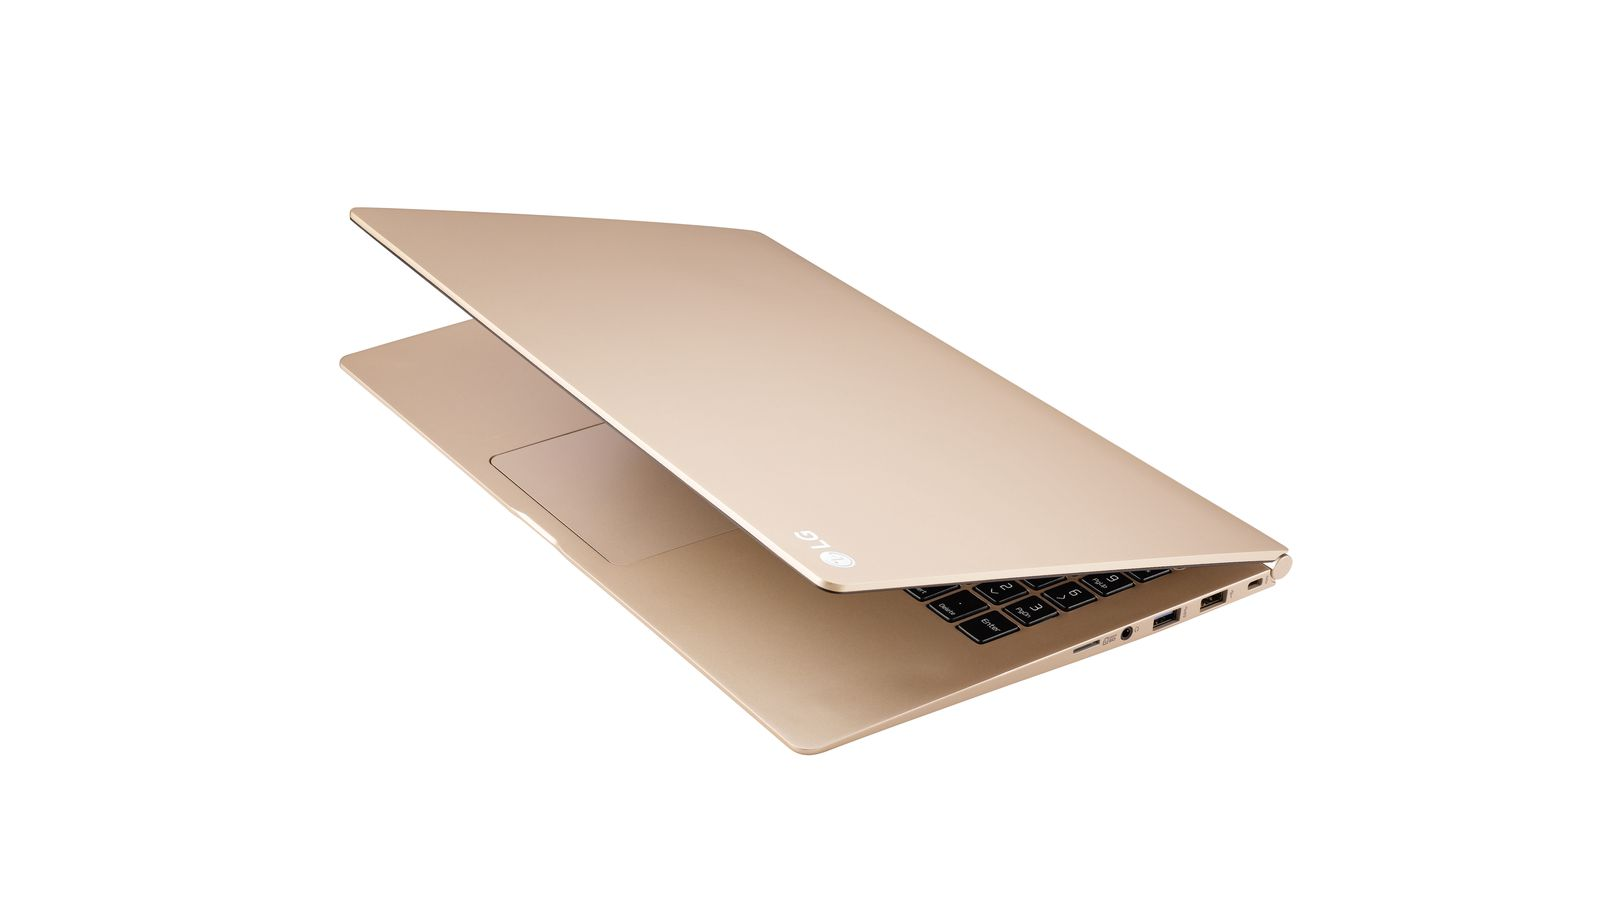 lg made a 15 inch gold macbook the verge. Black Bedroom Furniture Sets. Home Design Ideas